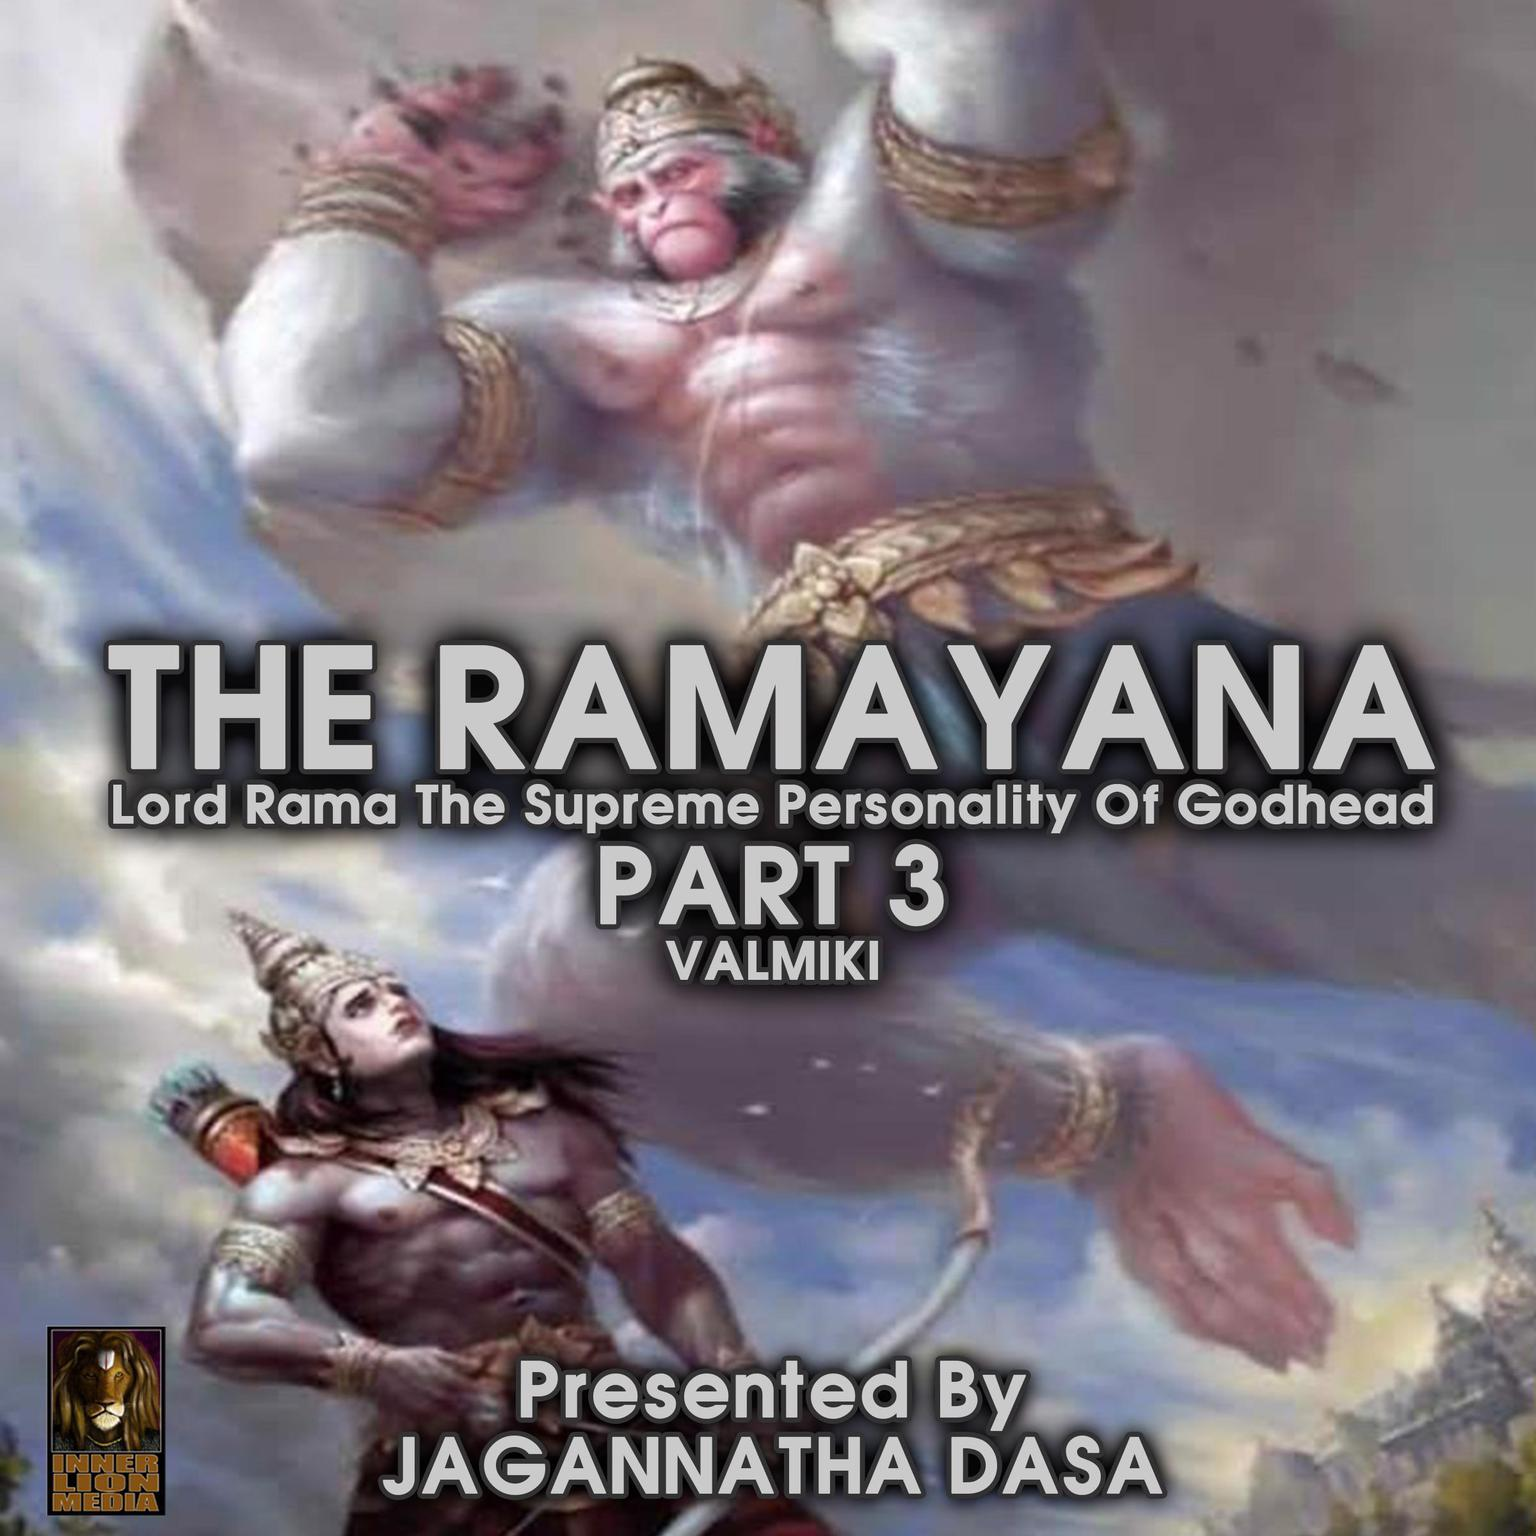 The Ramayana Lord Rama The Supreme Personality Of Godhead - Part 3 (Abridged) Audiobook, by Valmiki